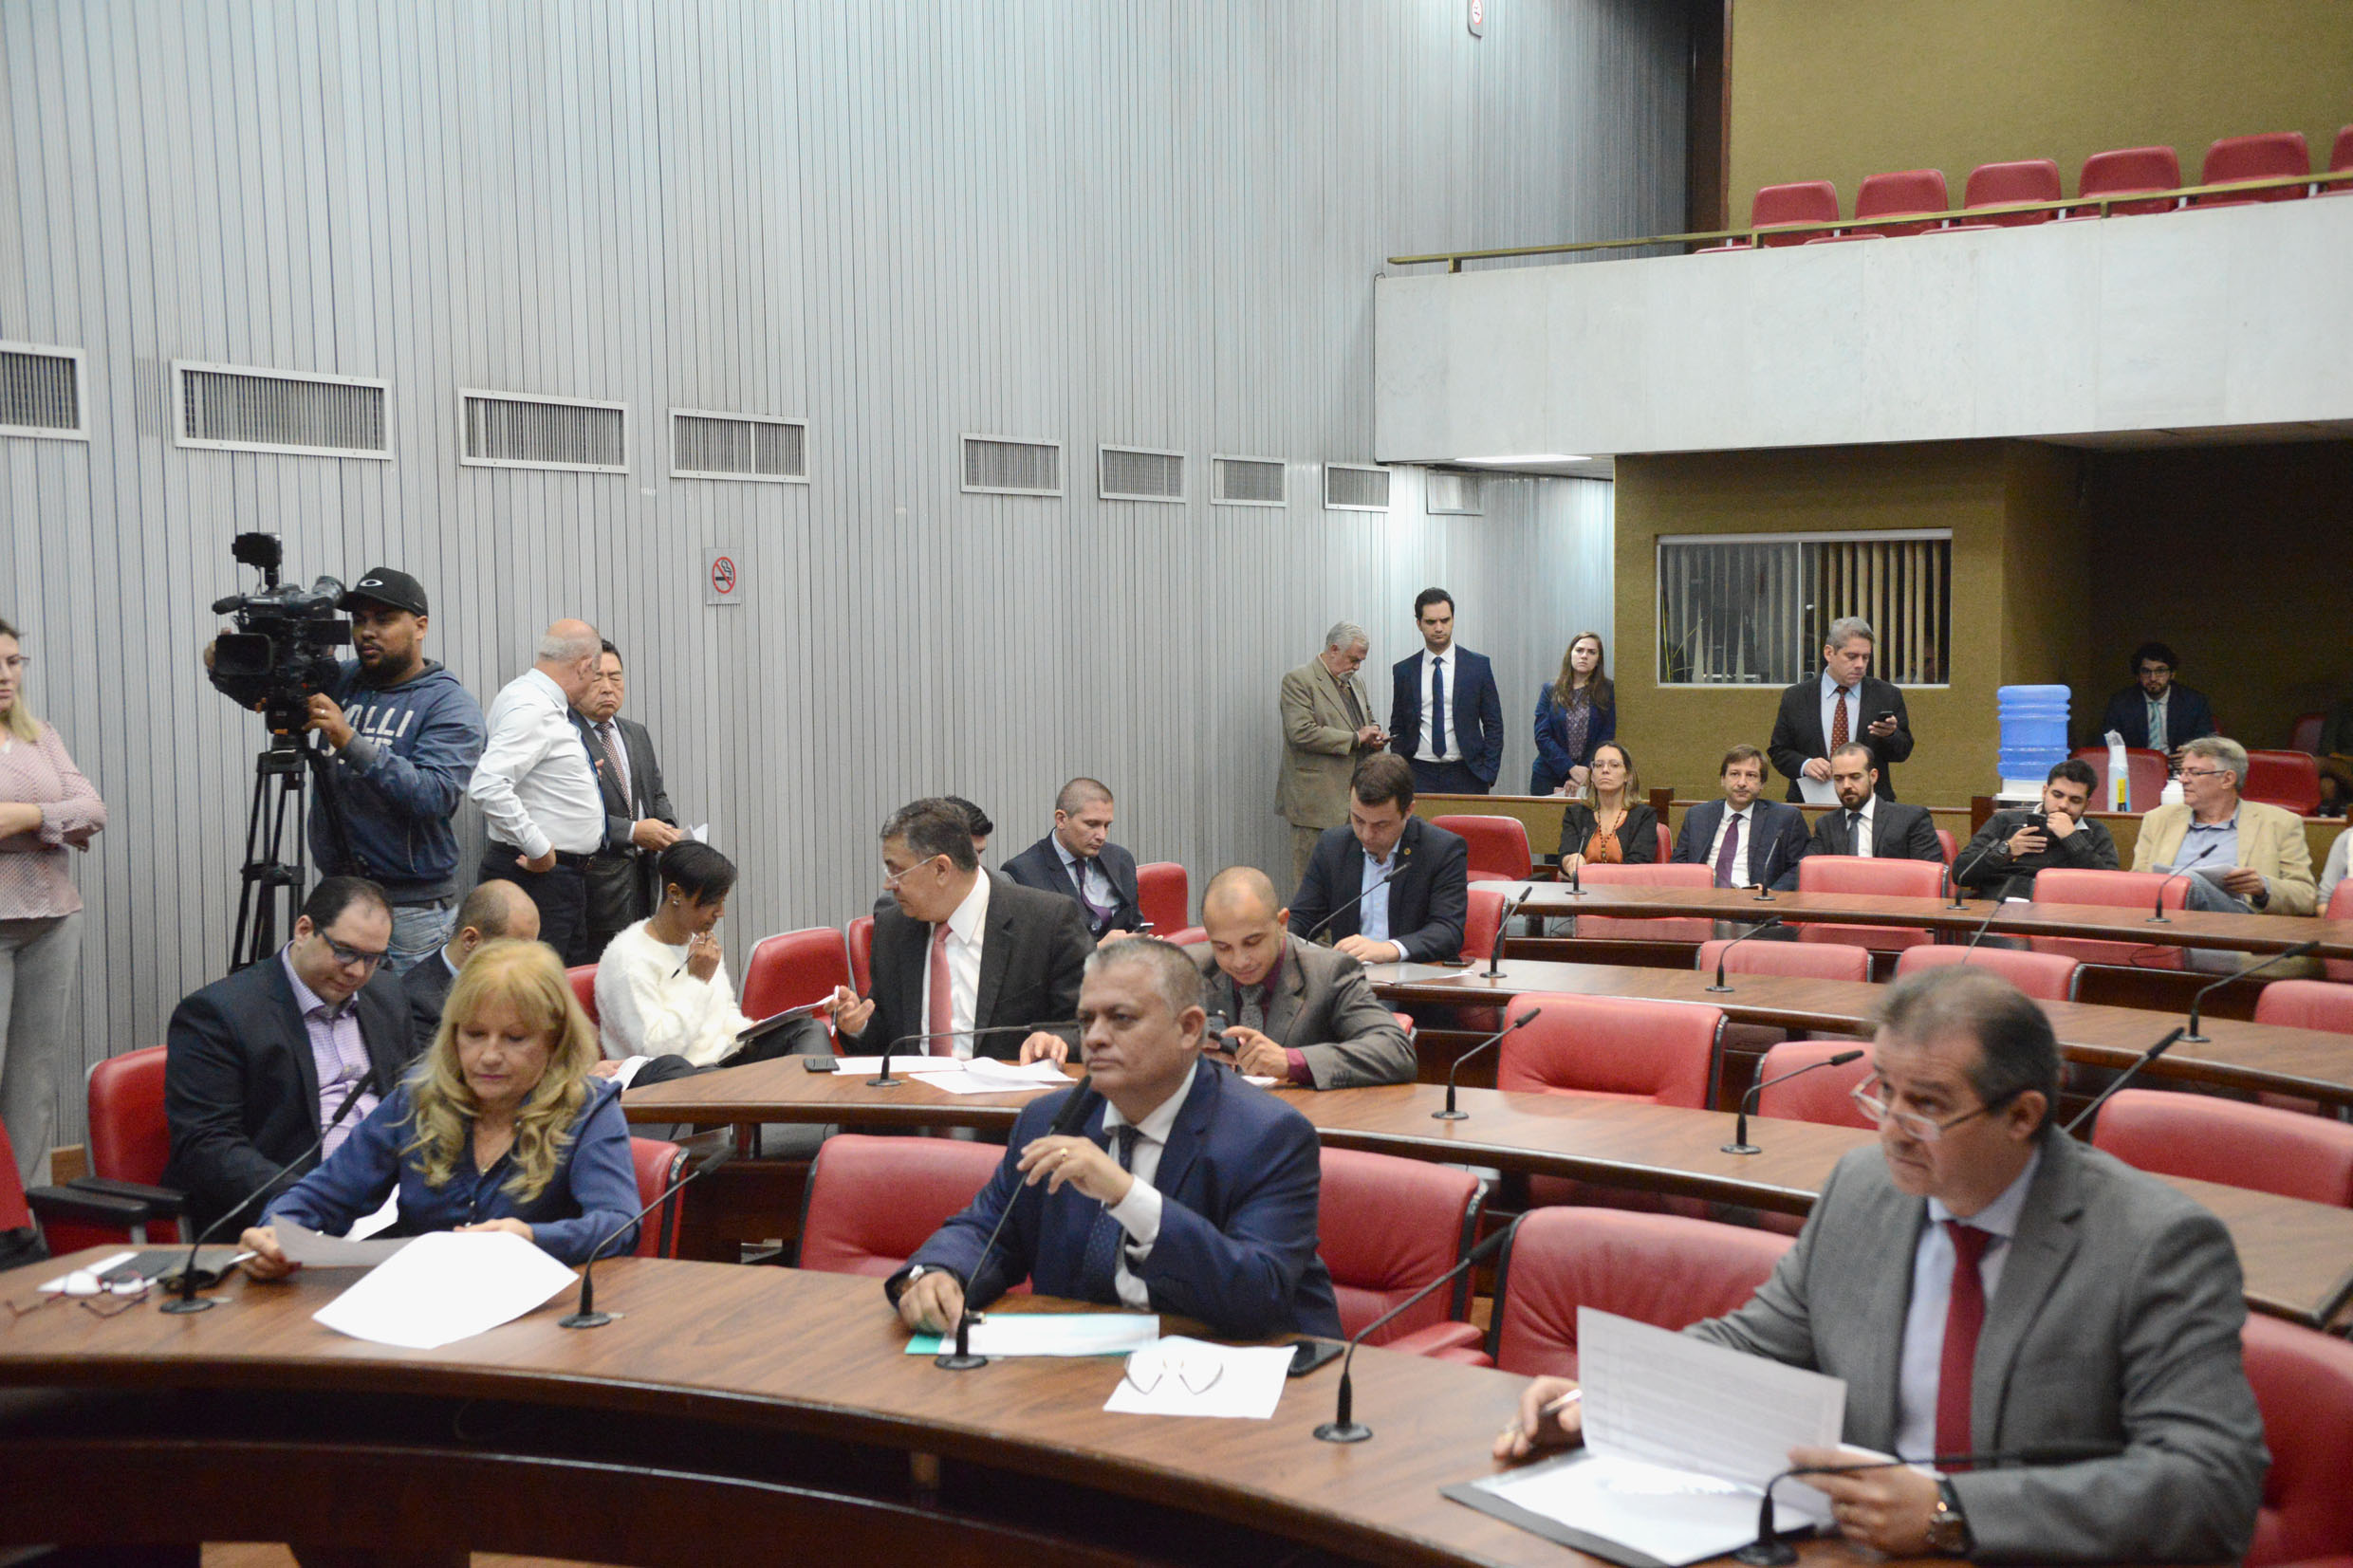 Parlamentares na comissão<a style='float:right' href='https://www3.al.sp.gov.br/repositorio/noticia/N-06-2019/fg235723.jpg' target=_blank><img src='/_img/material-file-download-white.png' width='14px' alt='Clique para baixar a imagem'></a>